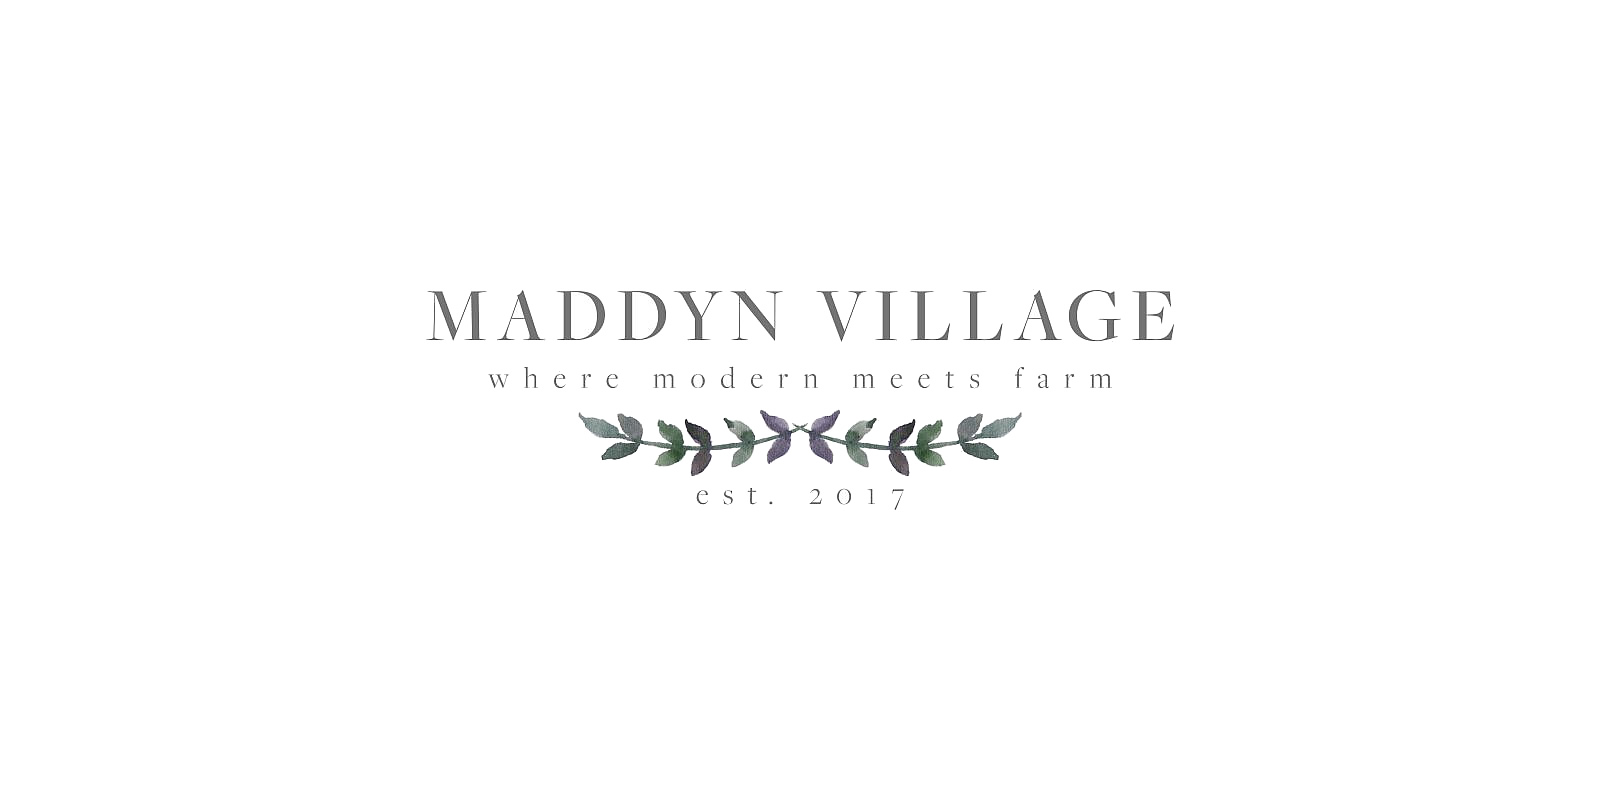 Meridian Idaho Subdivision Homes for Sale at Maddyn Village